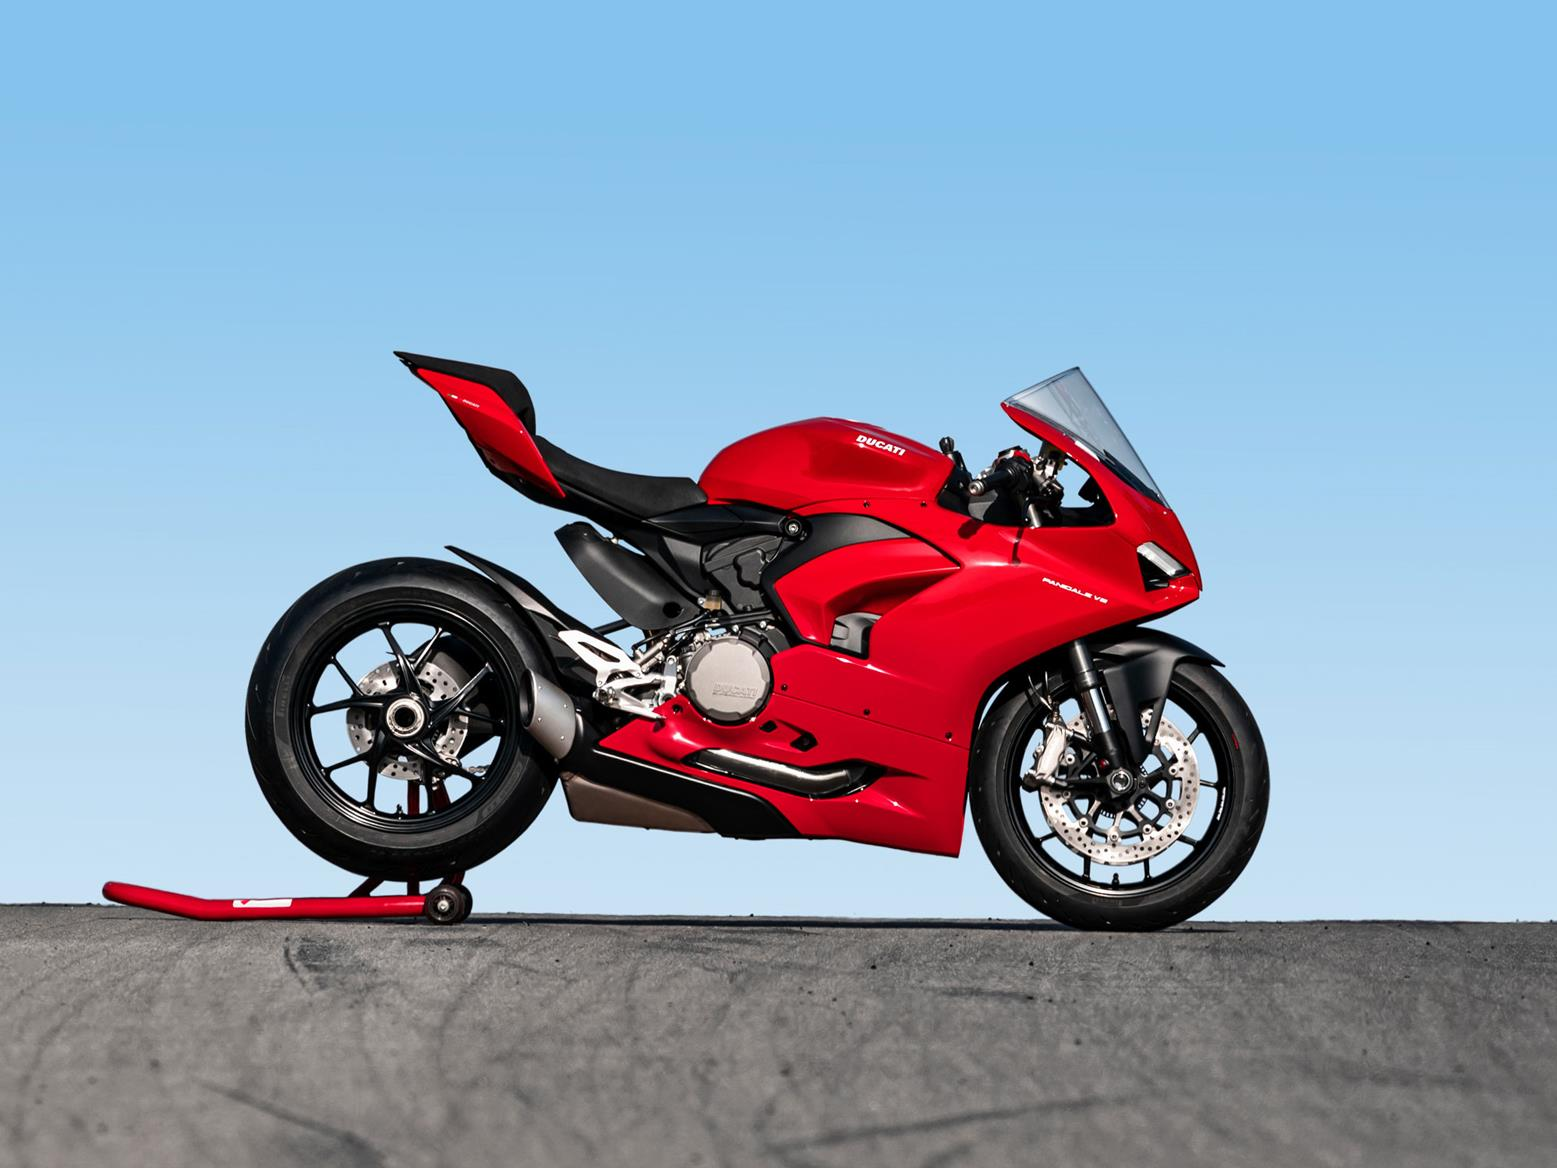 Revealed! It's the 2020 Ducati Panigale V2